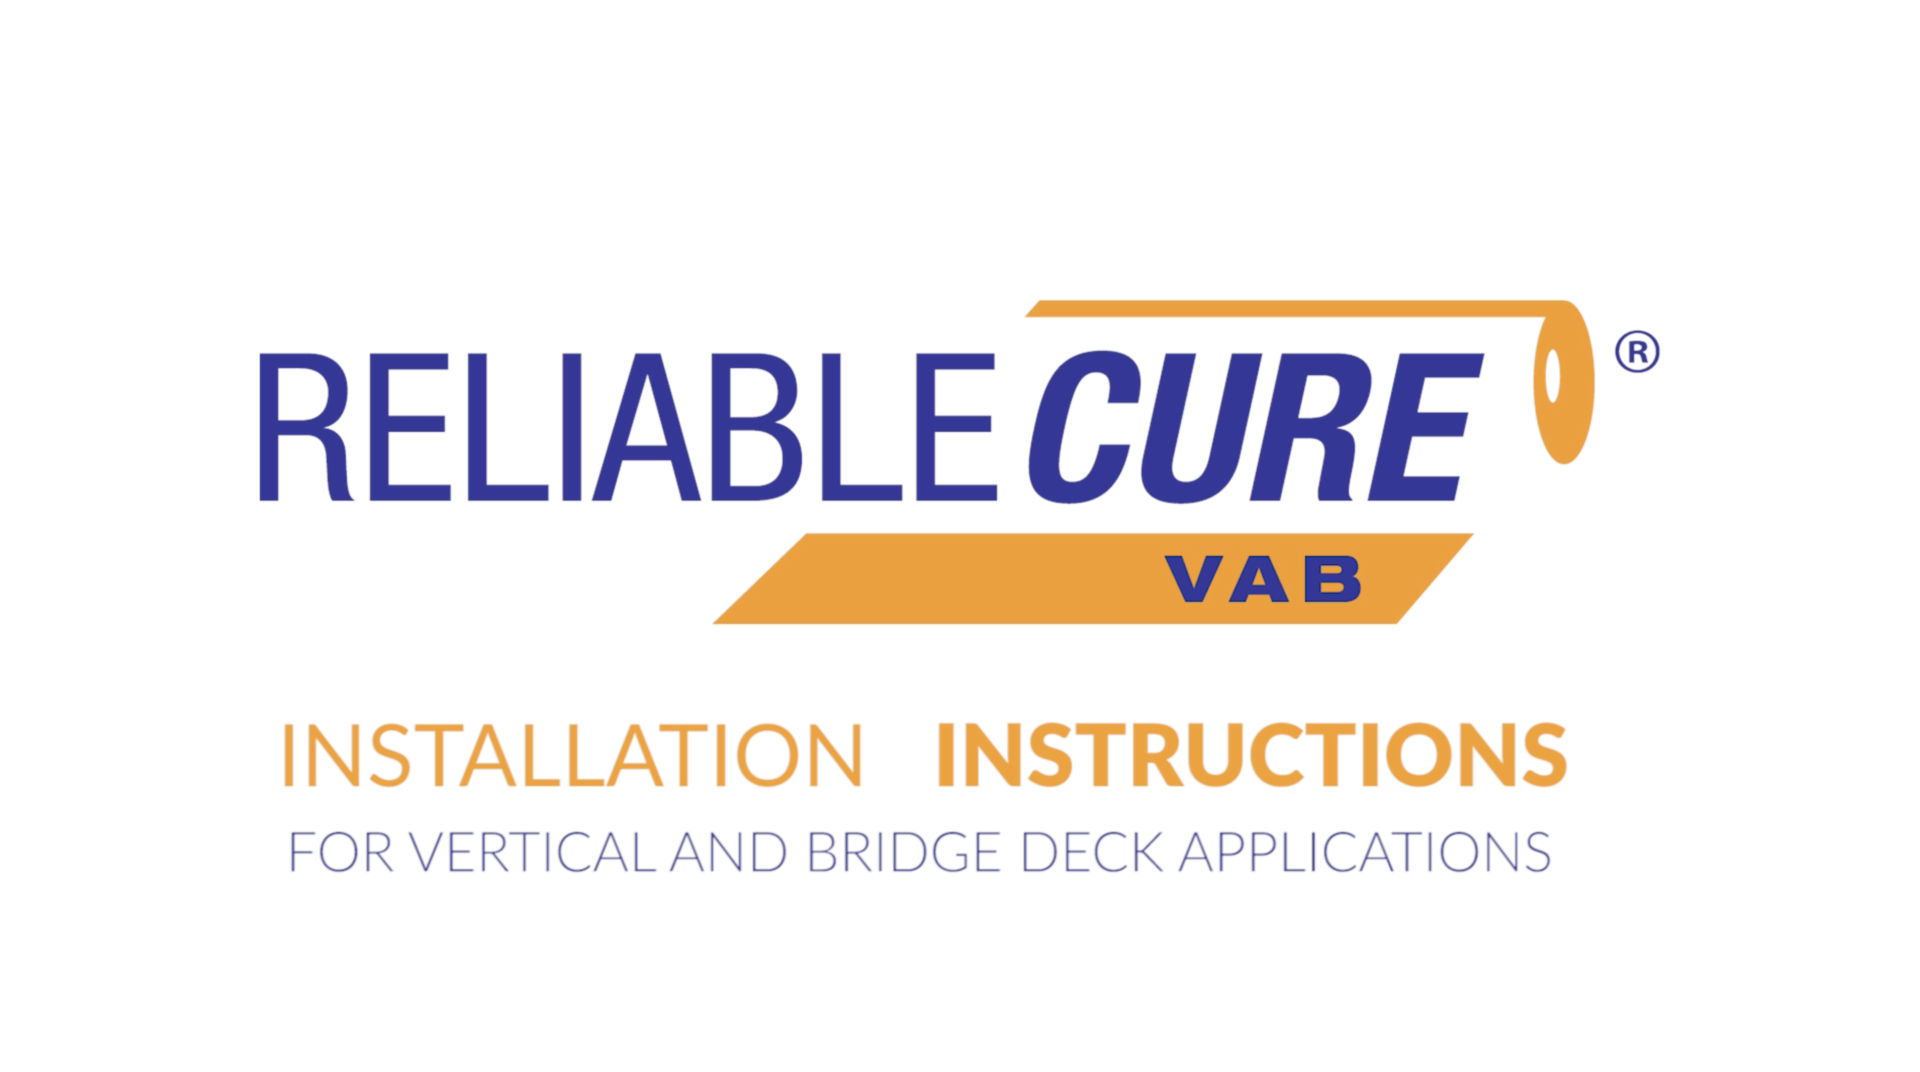 ReliableCure VAB Installation Instructions